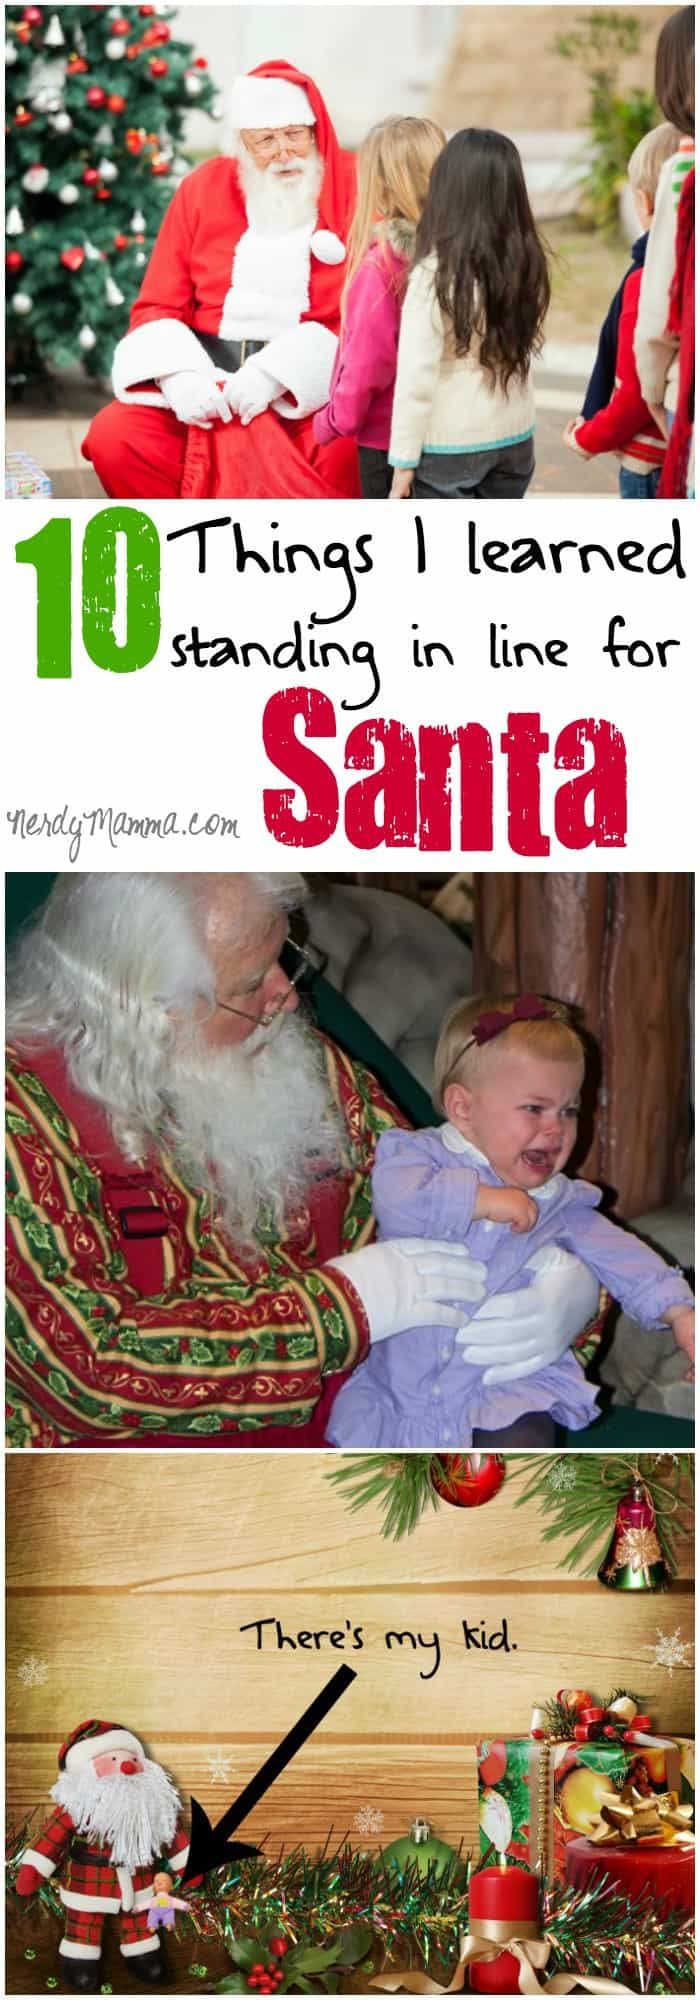 I hate standing in line for Santa. But I do it because my kids will need those memories. So, I stand in line. And learn my lessons...Heh.